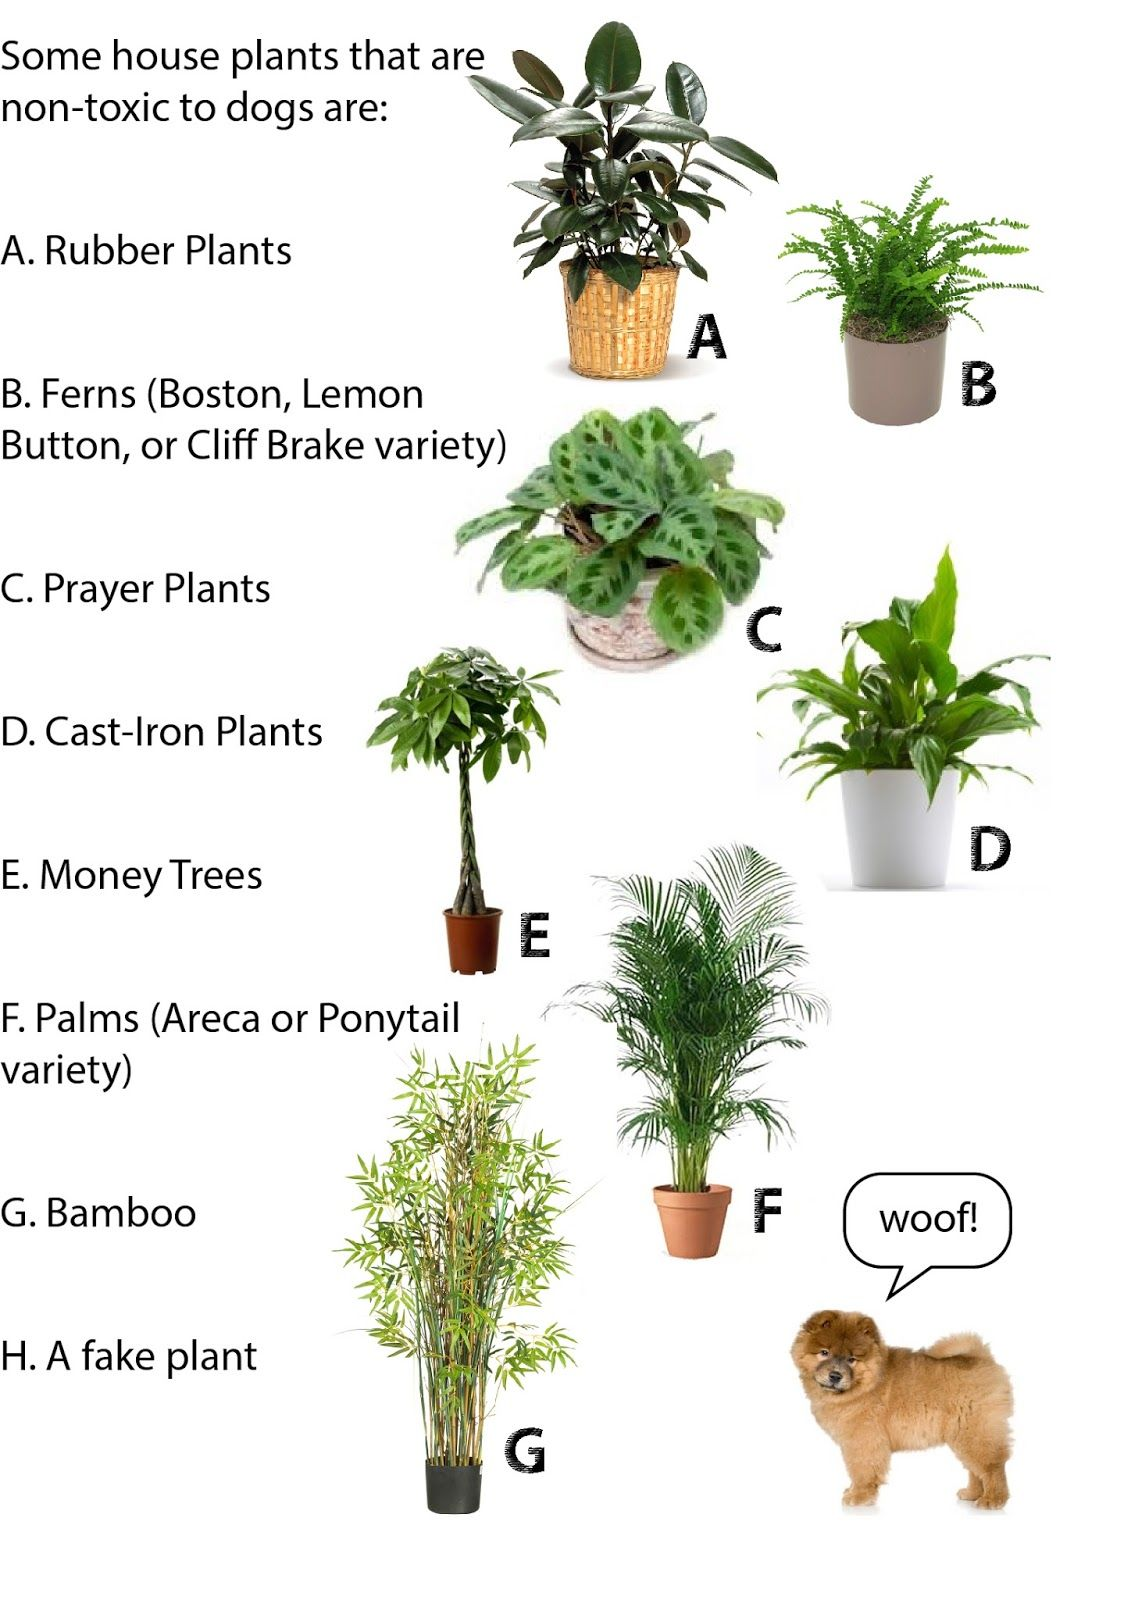 Here Are A Few Dog Safe Potted Plants For Your Home Sources Of Information A Beautif Indoor Plants Pet Friendly Safe House Plants Plants Pet Friendly